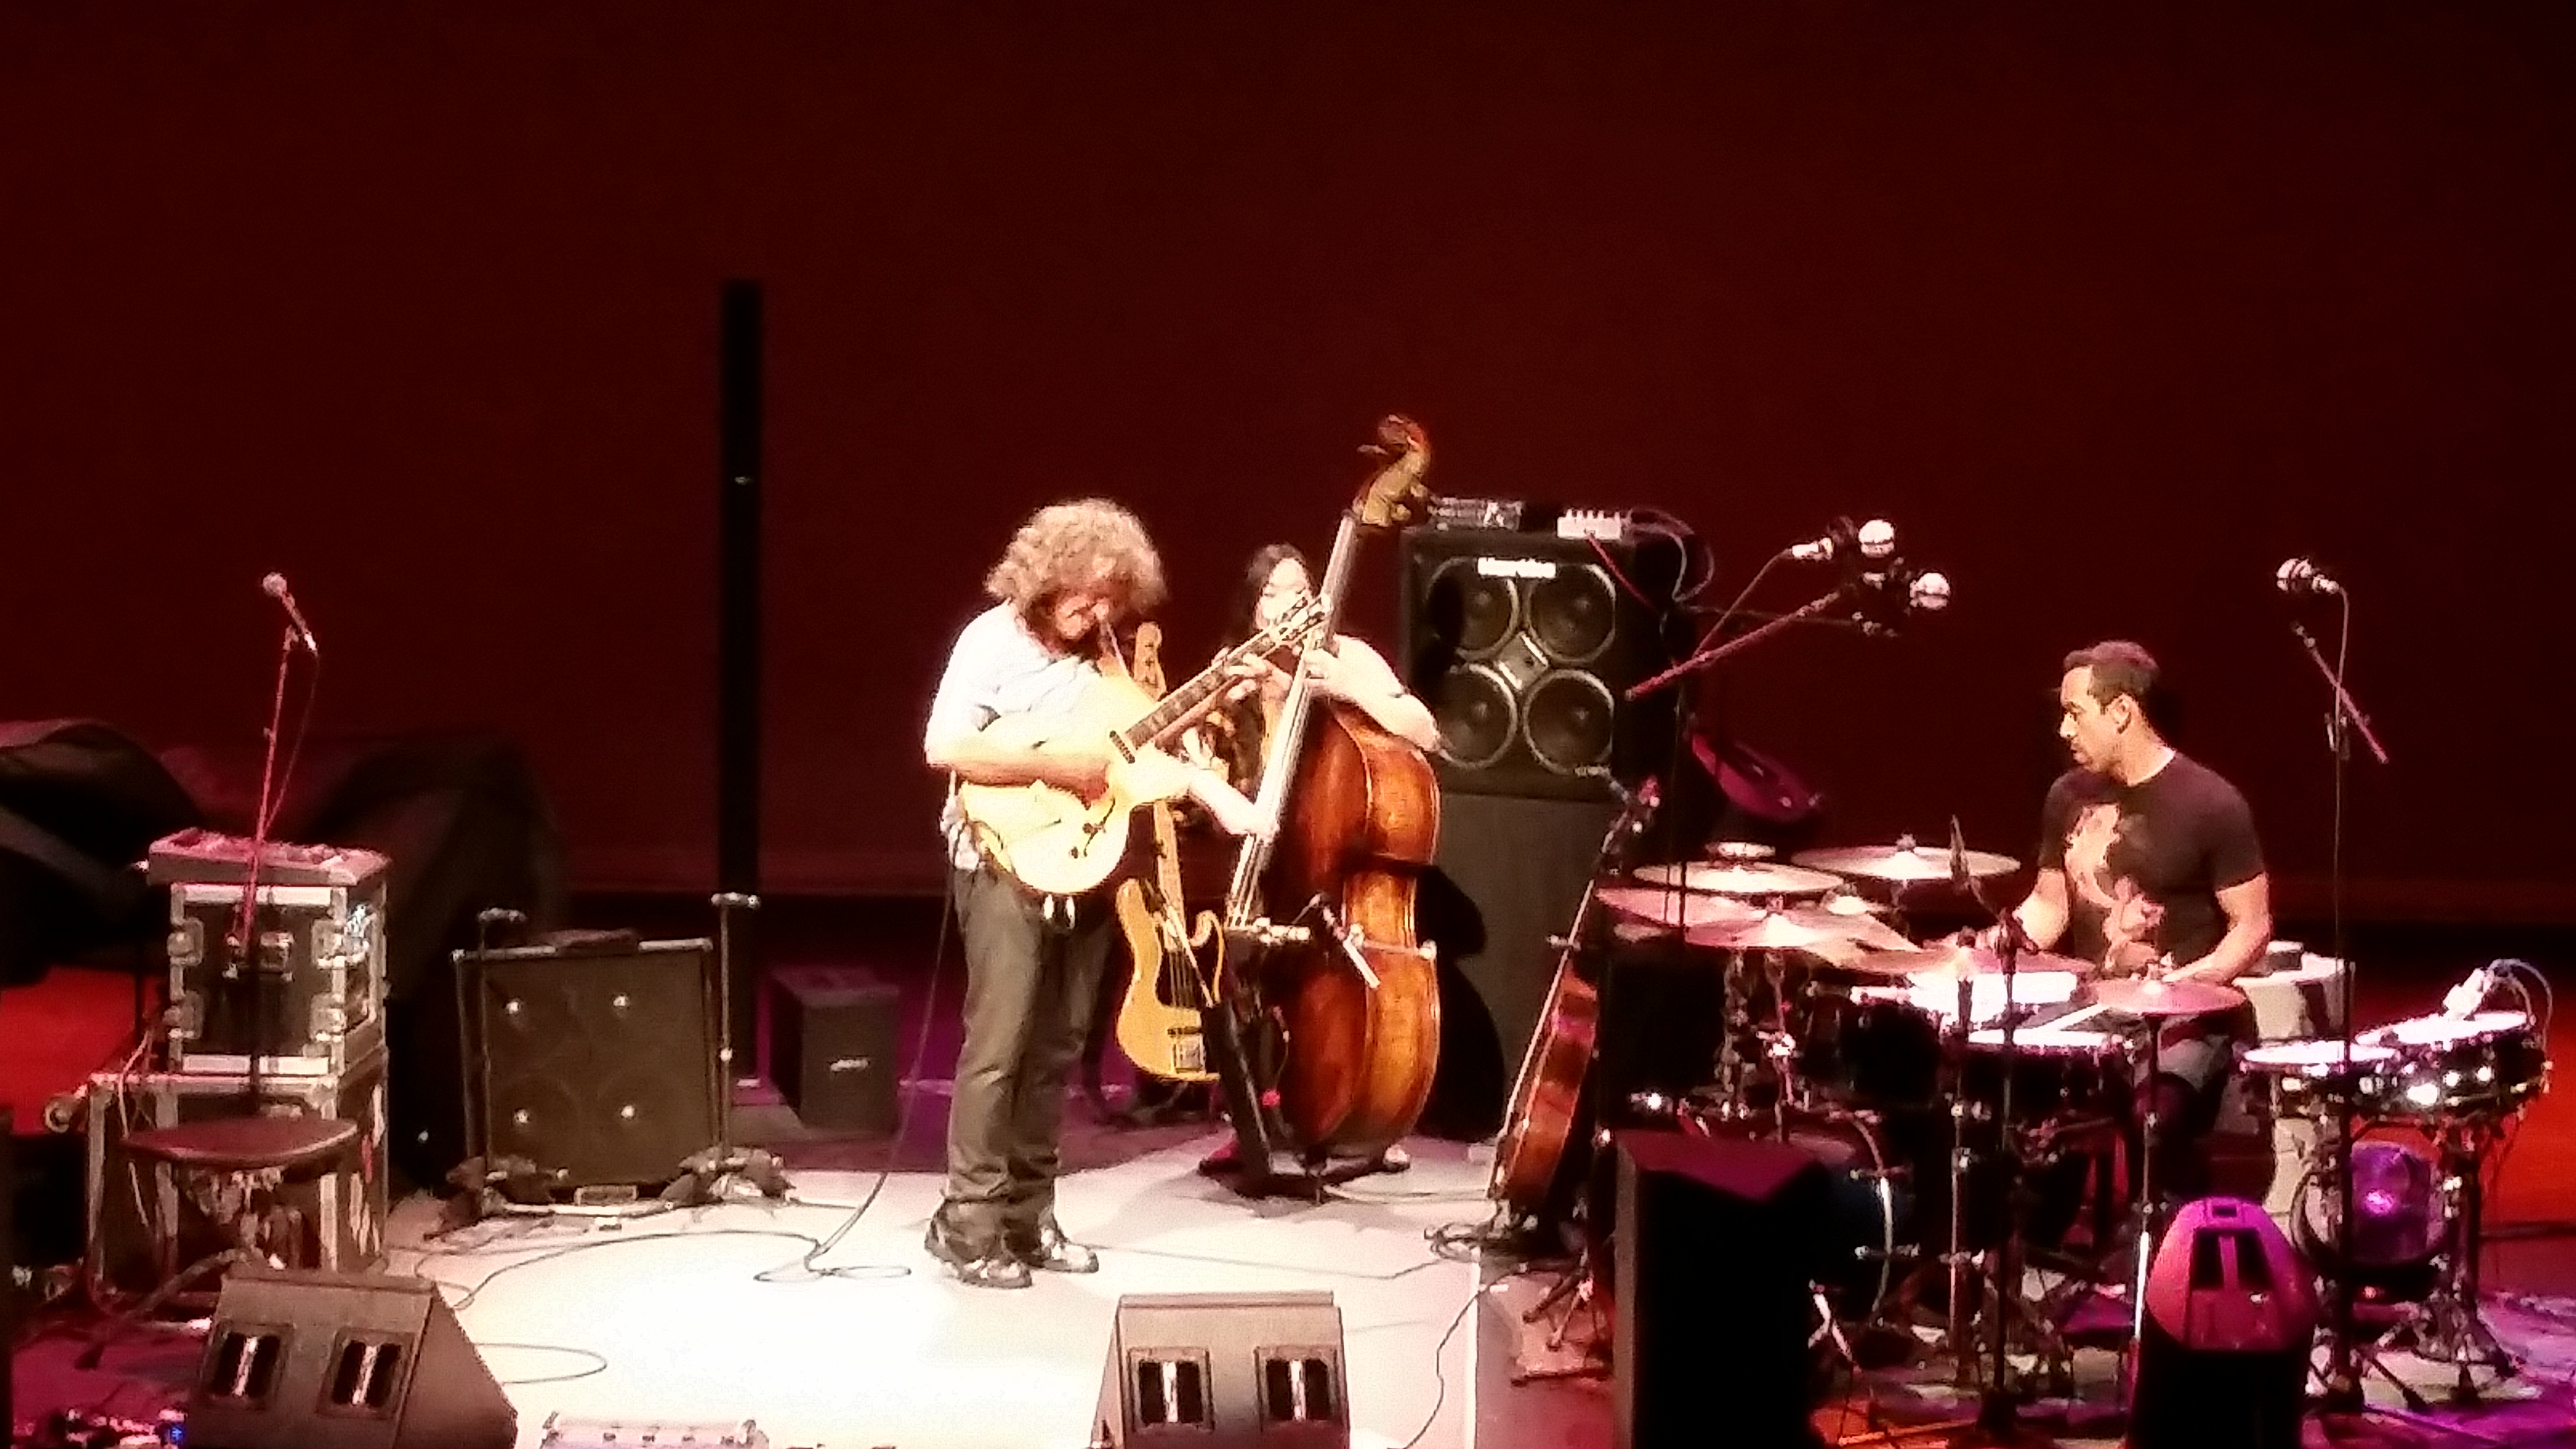 PatMetheny2016-09-16VirginiaPiperTheaterScottsdaleAZ (11).jpg